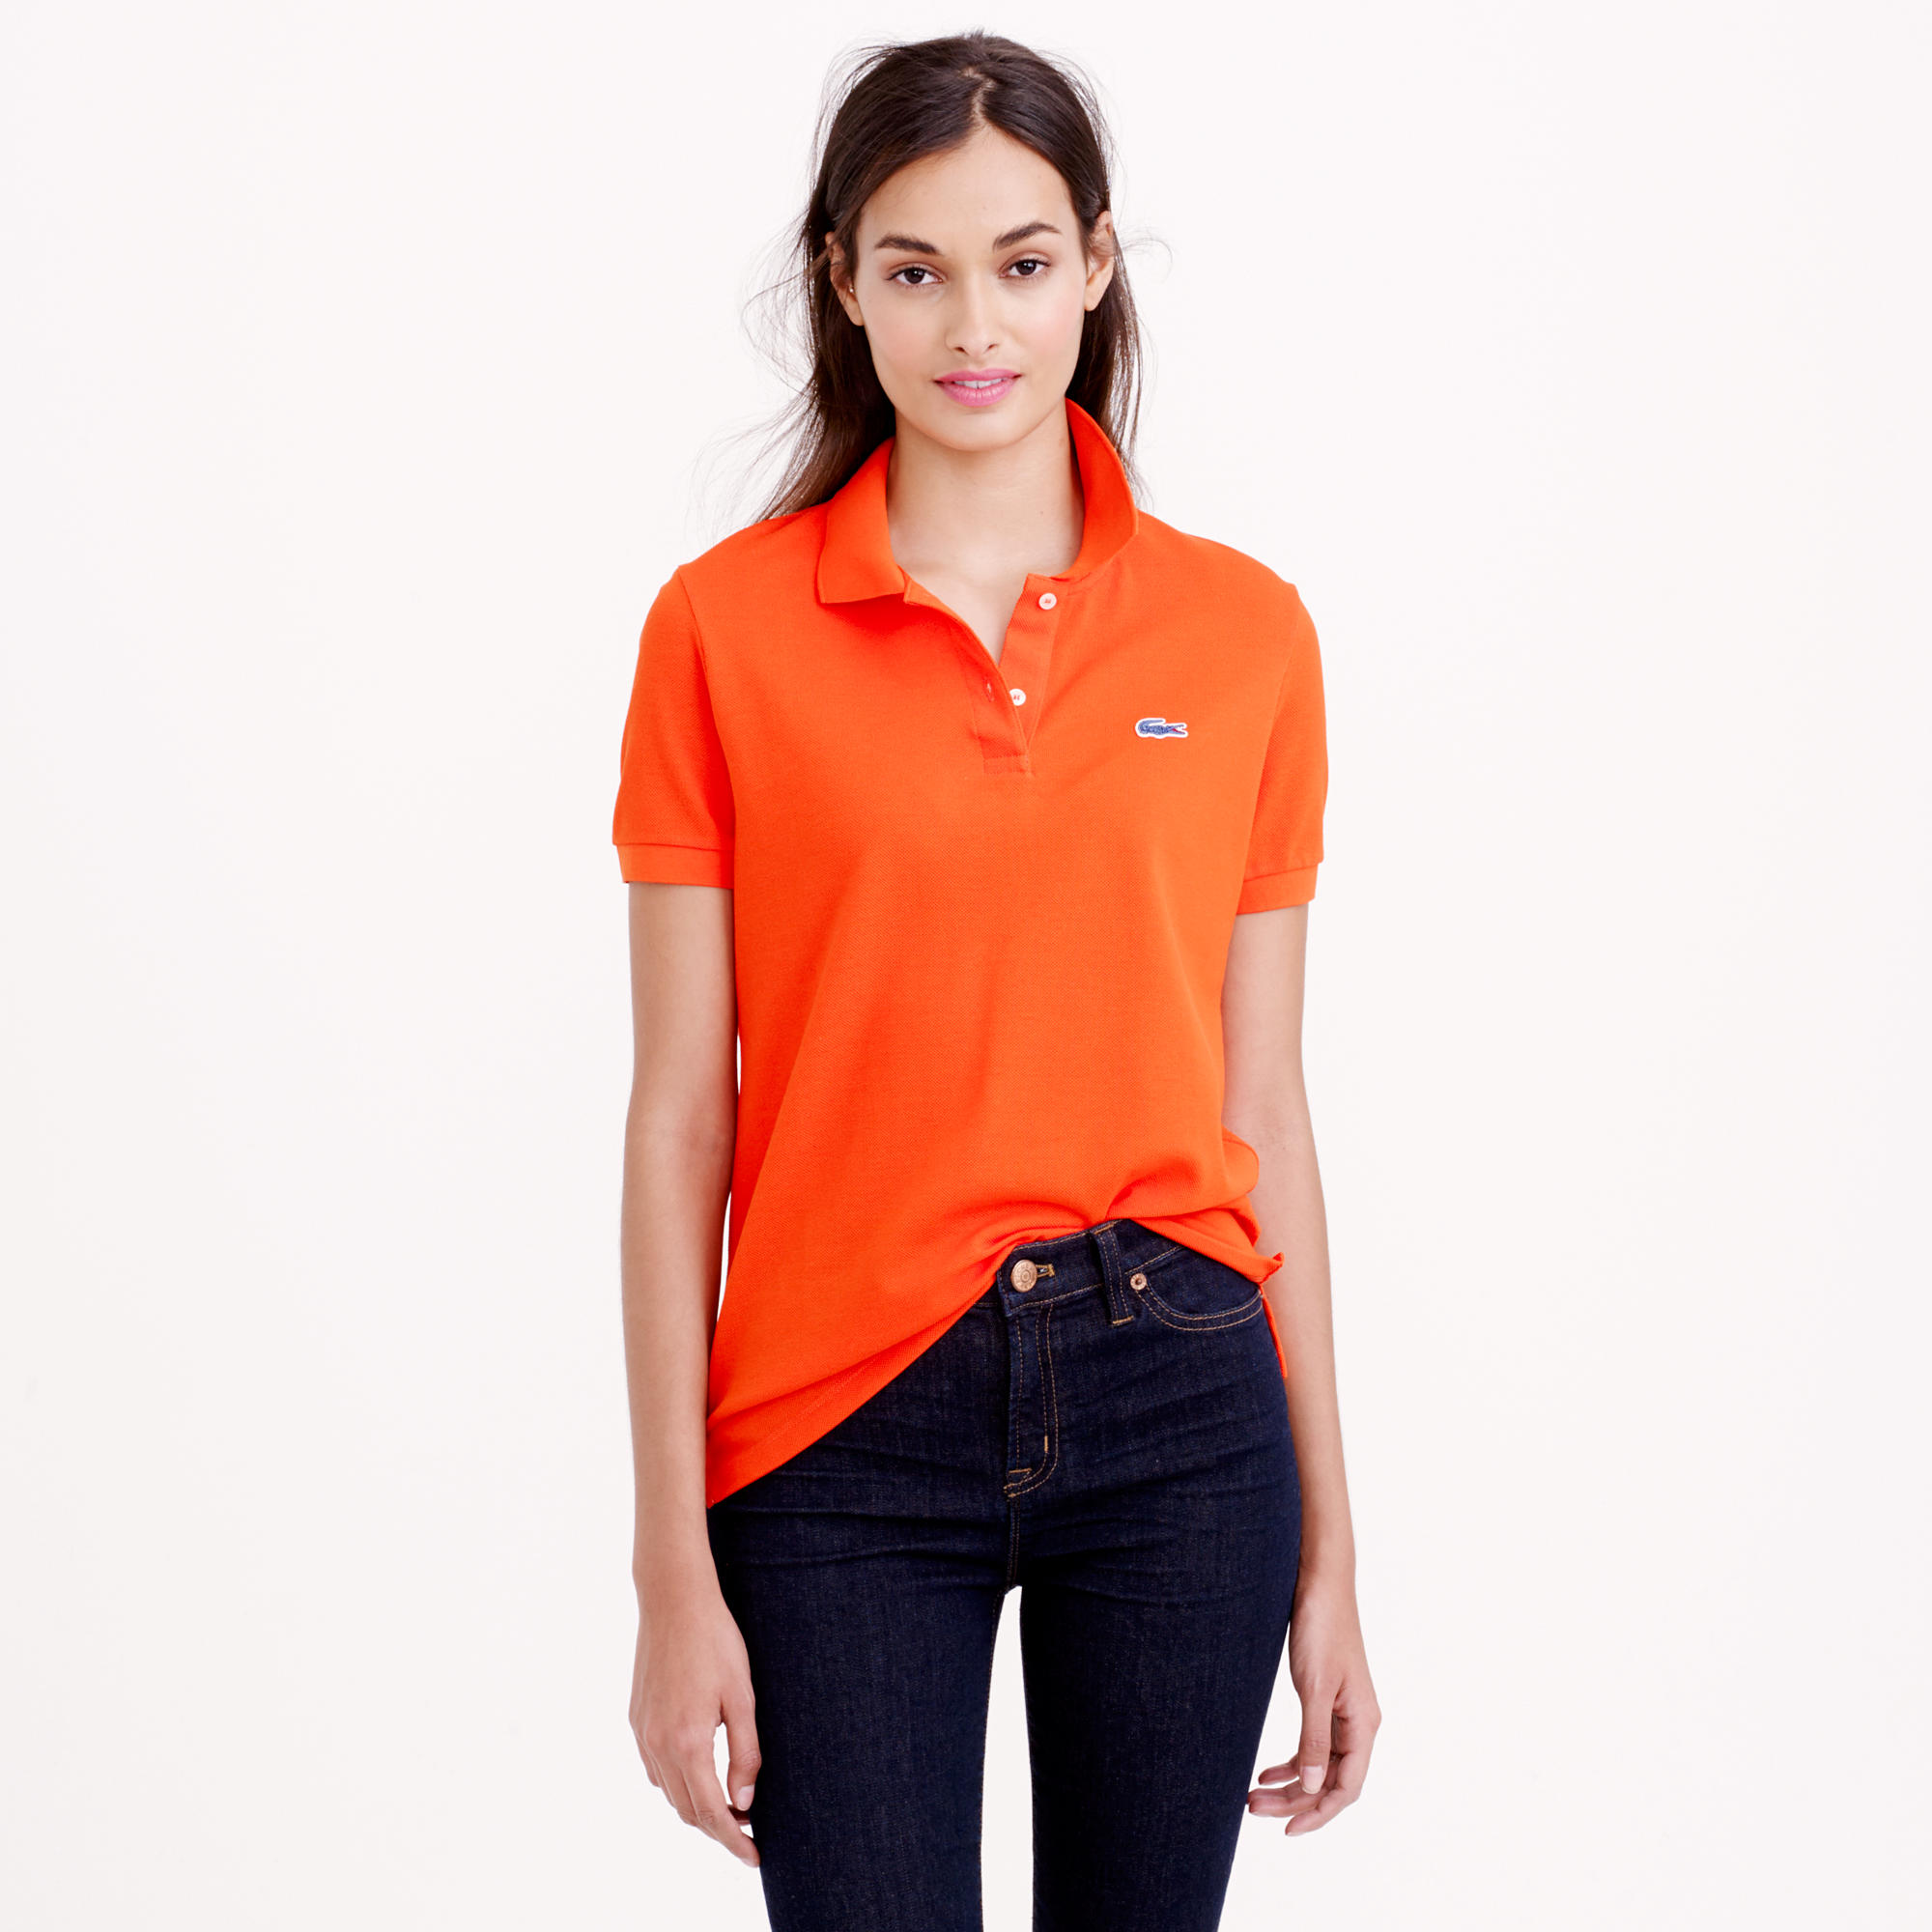 Lacoste-JCrew-Womens-Polo-Shirt-Collaboration-001